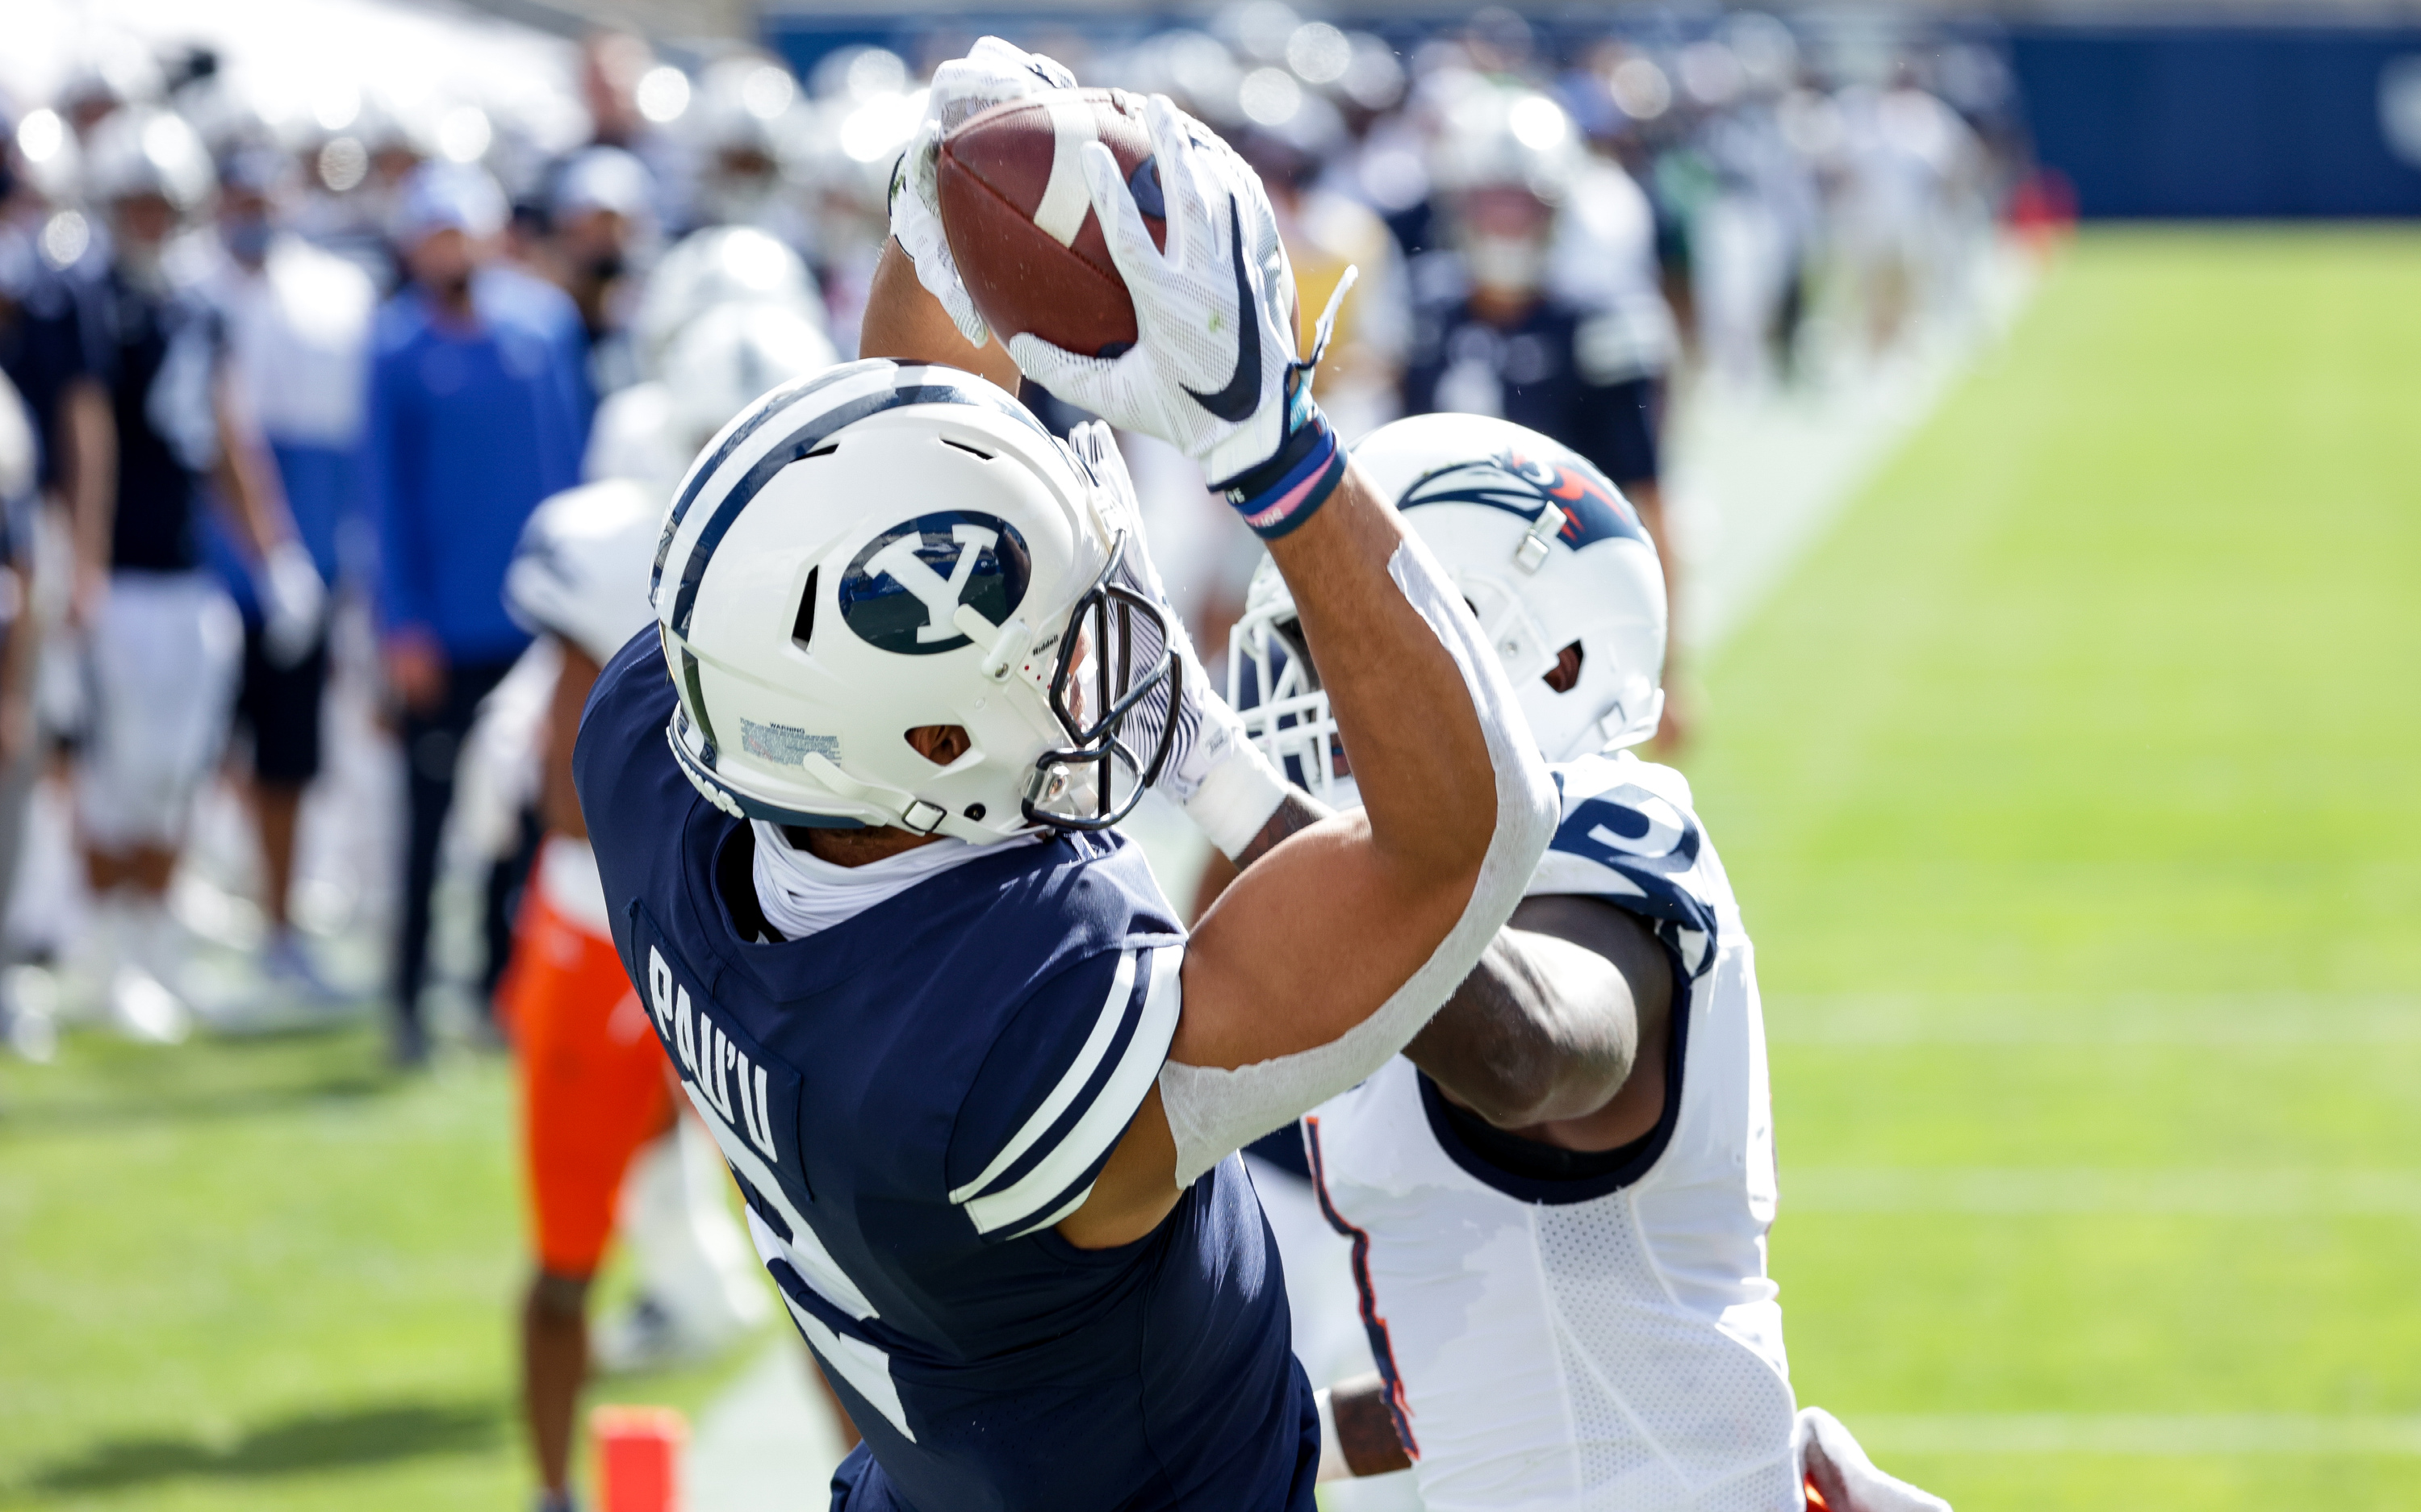 Brigham Young Cougars wide receiver Neil Pau'u (2) pulls in an end zone pass ahead of UTSA Roadrunners safety Antonio Parks (4), putting the Cougars up 7-3 after the PAT during the game at LaVell Edwards Stadium in Provo on Saturday, Oct. 10, 2020.